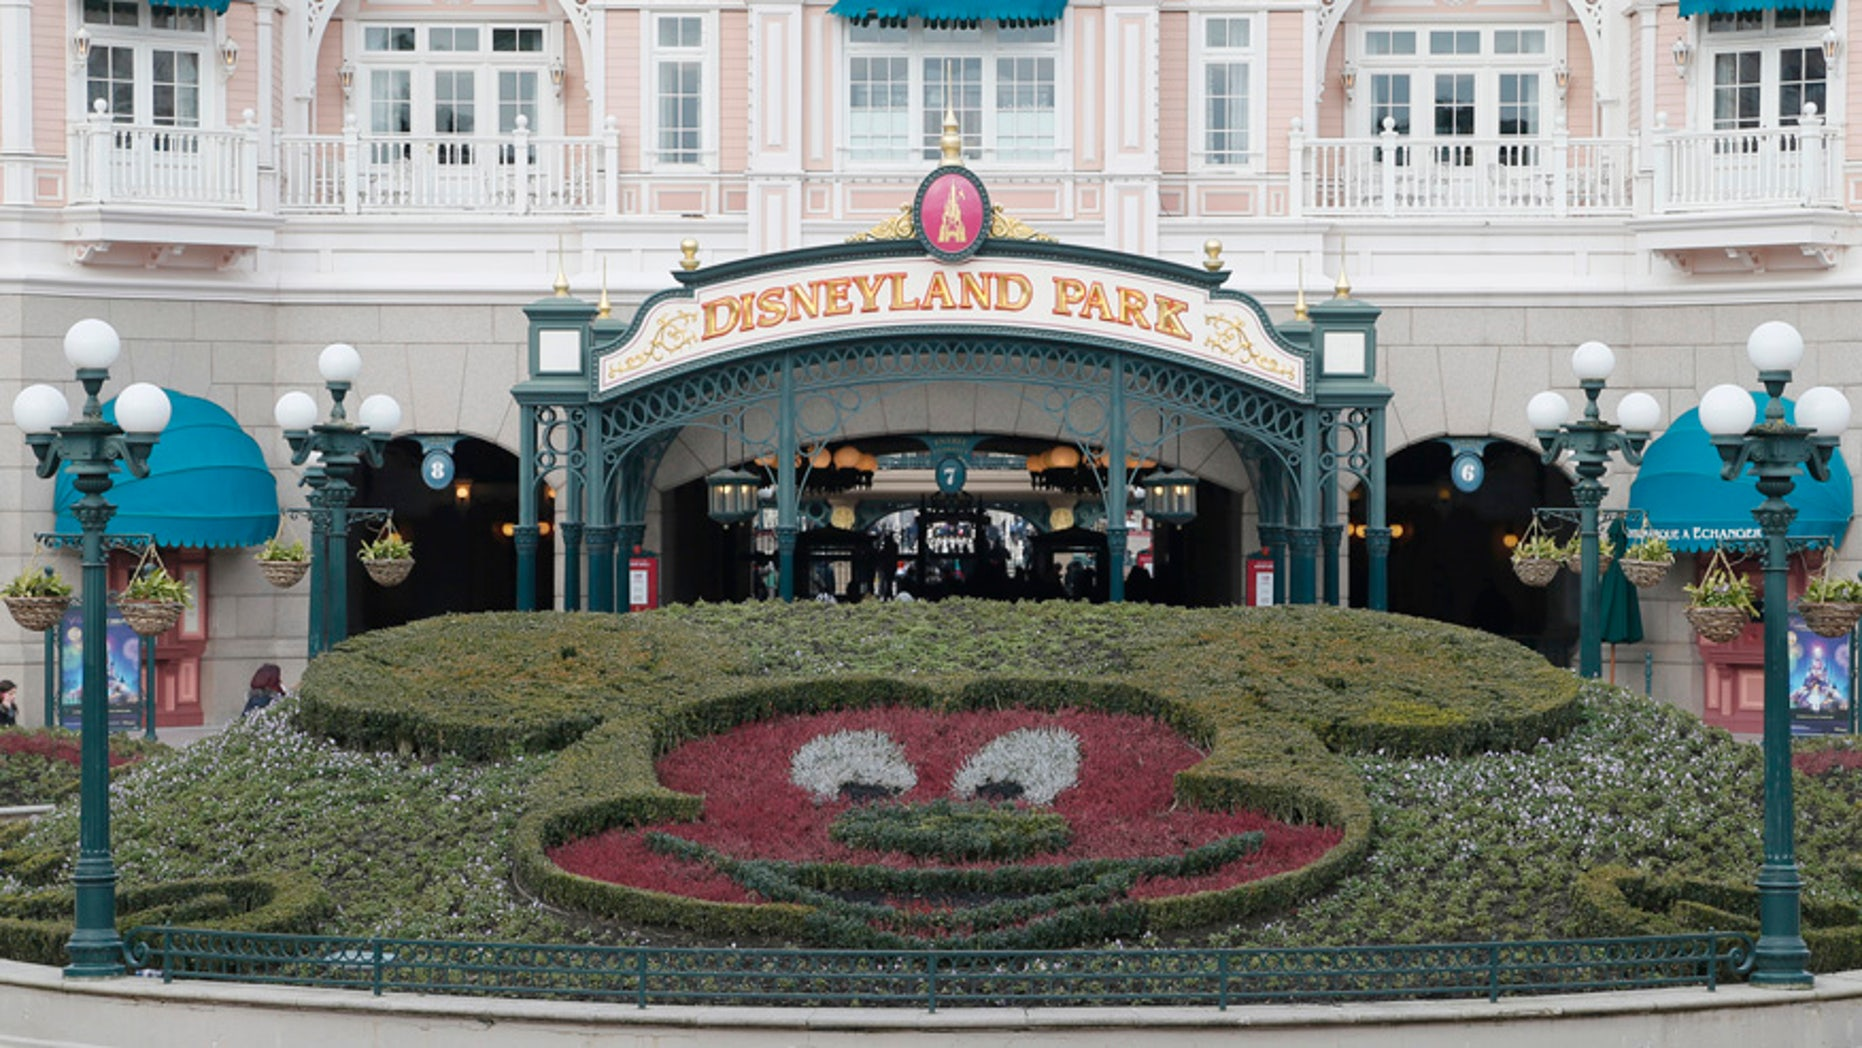 Jan. 21, 2015: A general view of the main entrance to the Disneyland Paris Resort run by EuroDisney S.C.A in Marne-la-Vallee, France.